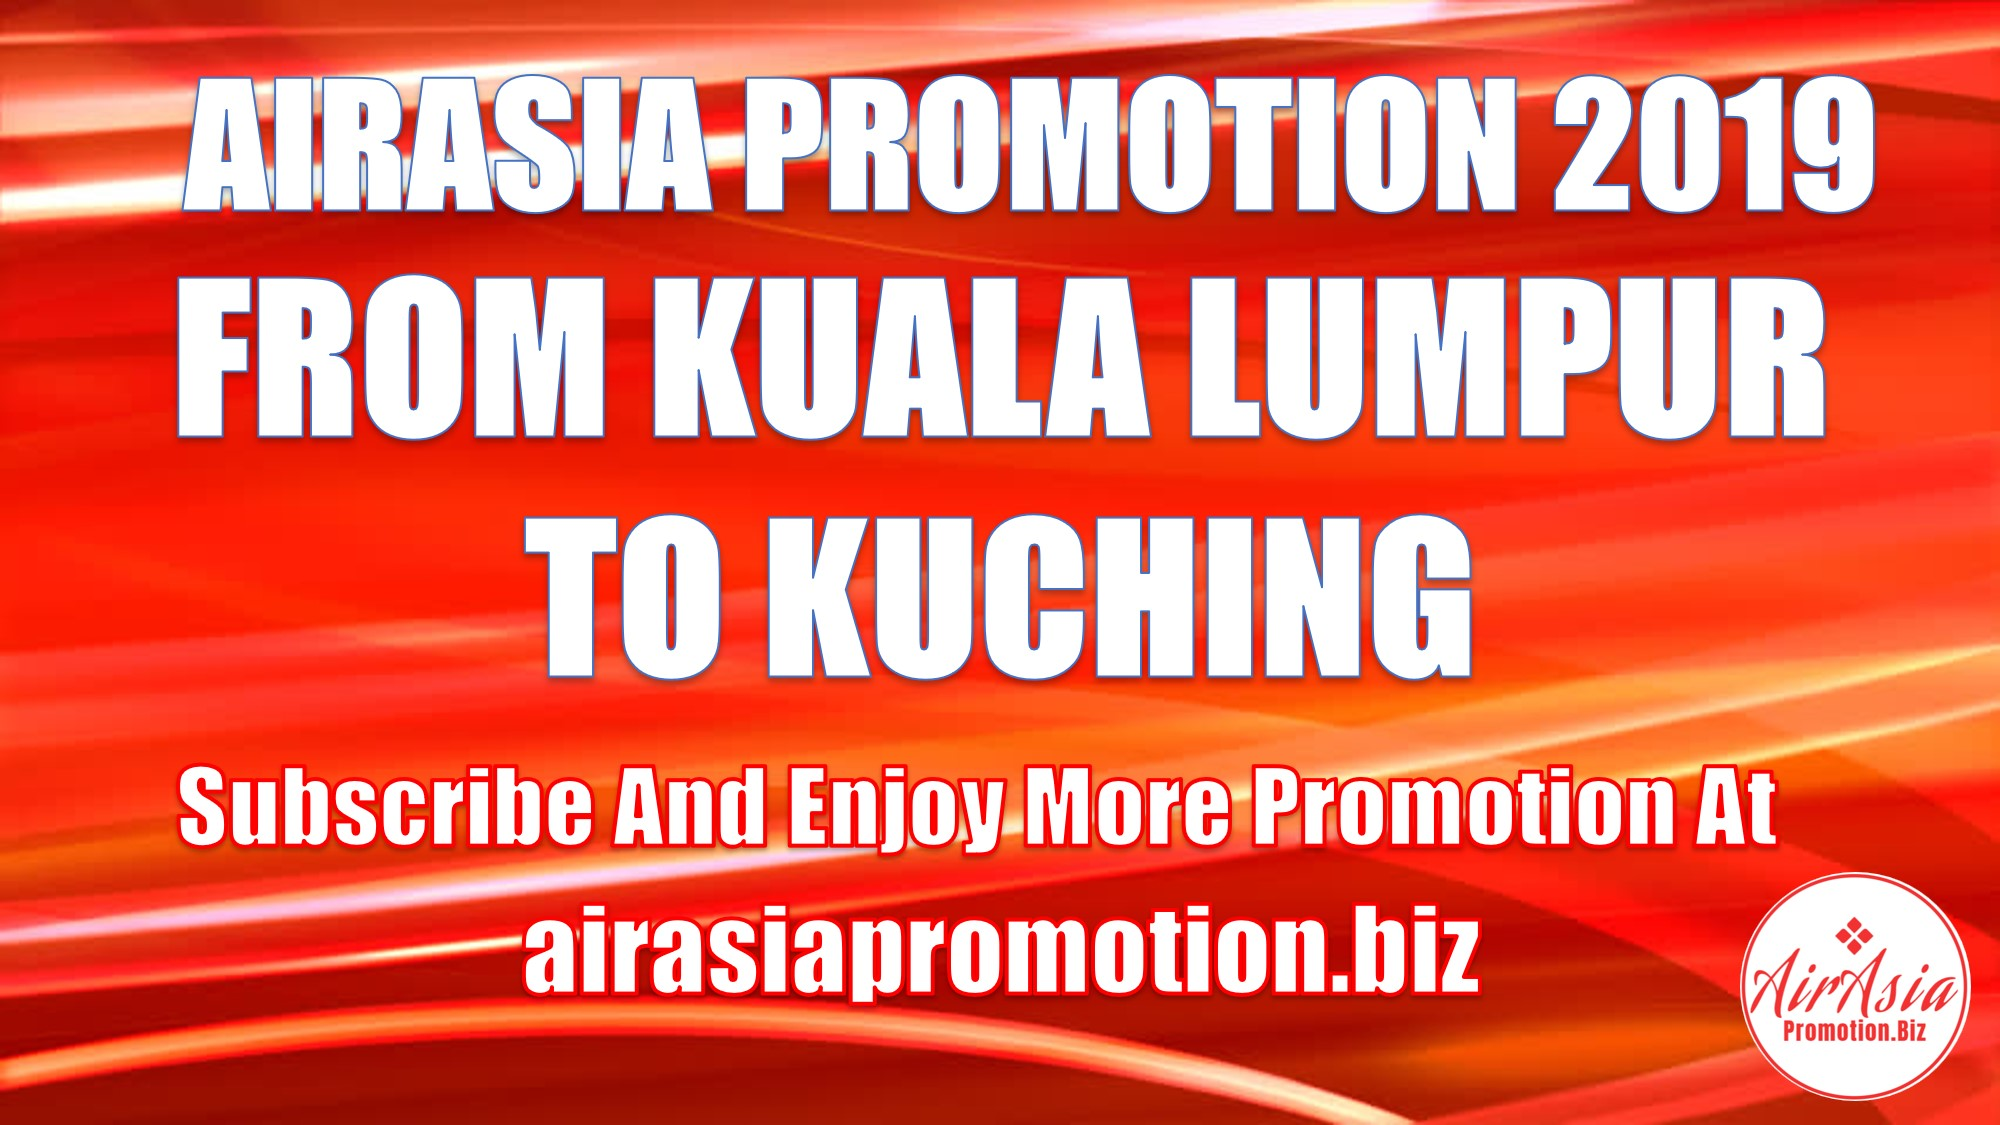 AirAsia Promotion From Kuala Lumpur To Kuching In March 2019 As Low As RM71 | AirAsia SALE Promotion 2019-2020